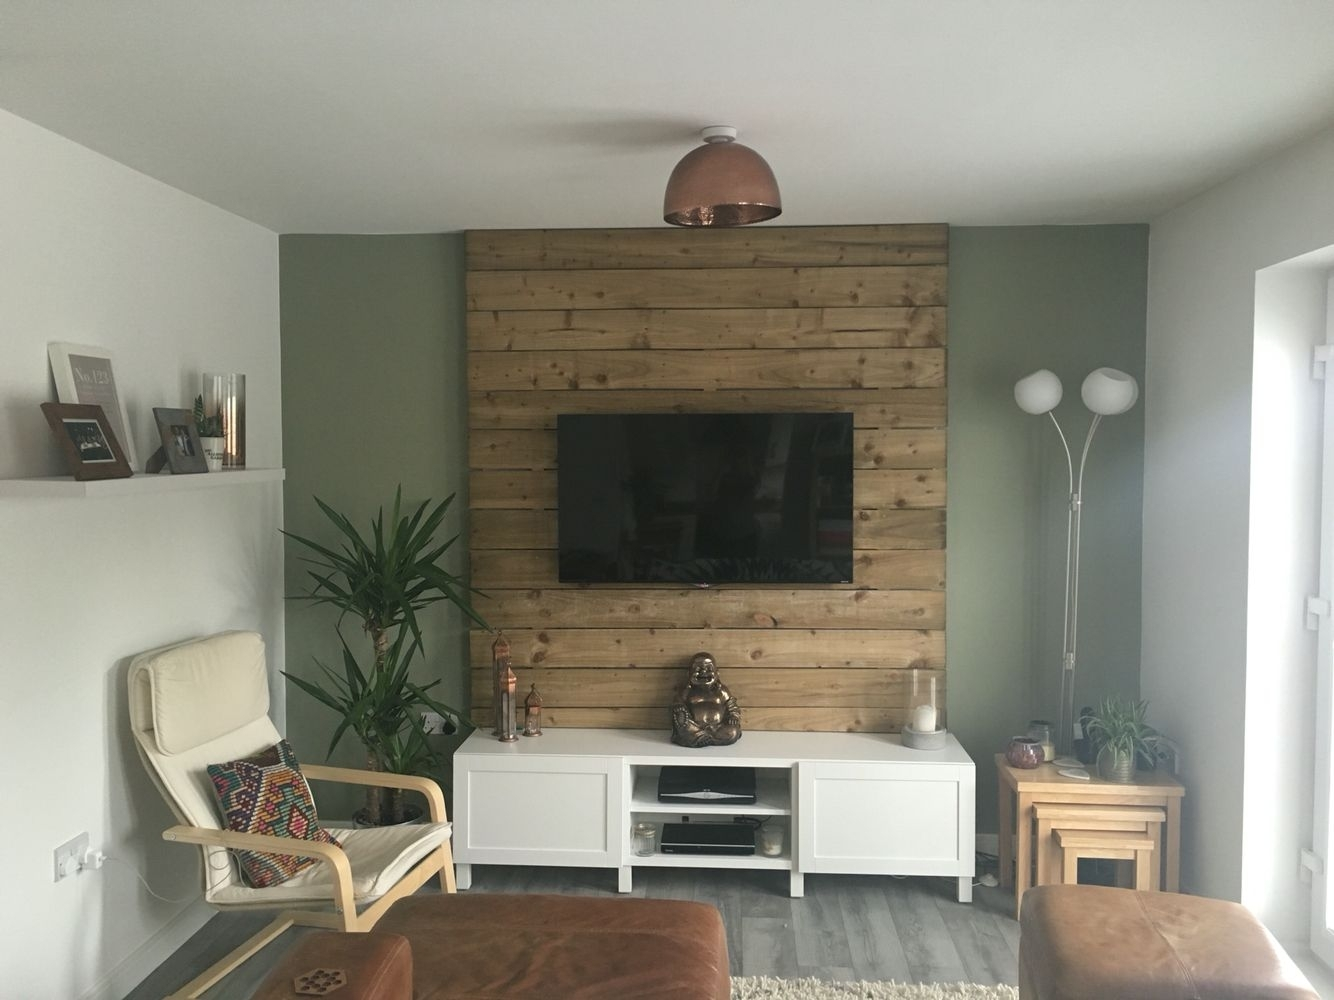 18 Chic And Modern Tv Wall Mount Ideas For Living Room | Tv Wall Throughout Latest Wall Accents With Tv (View 3 of 15)